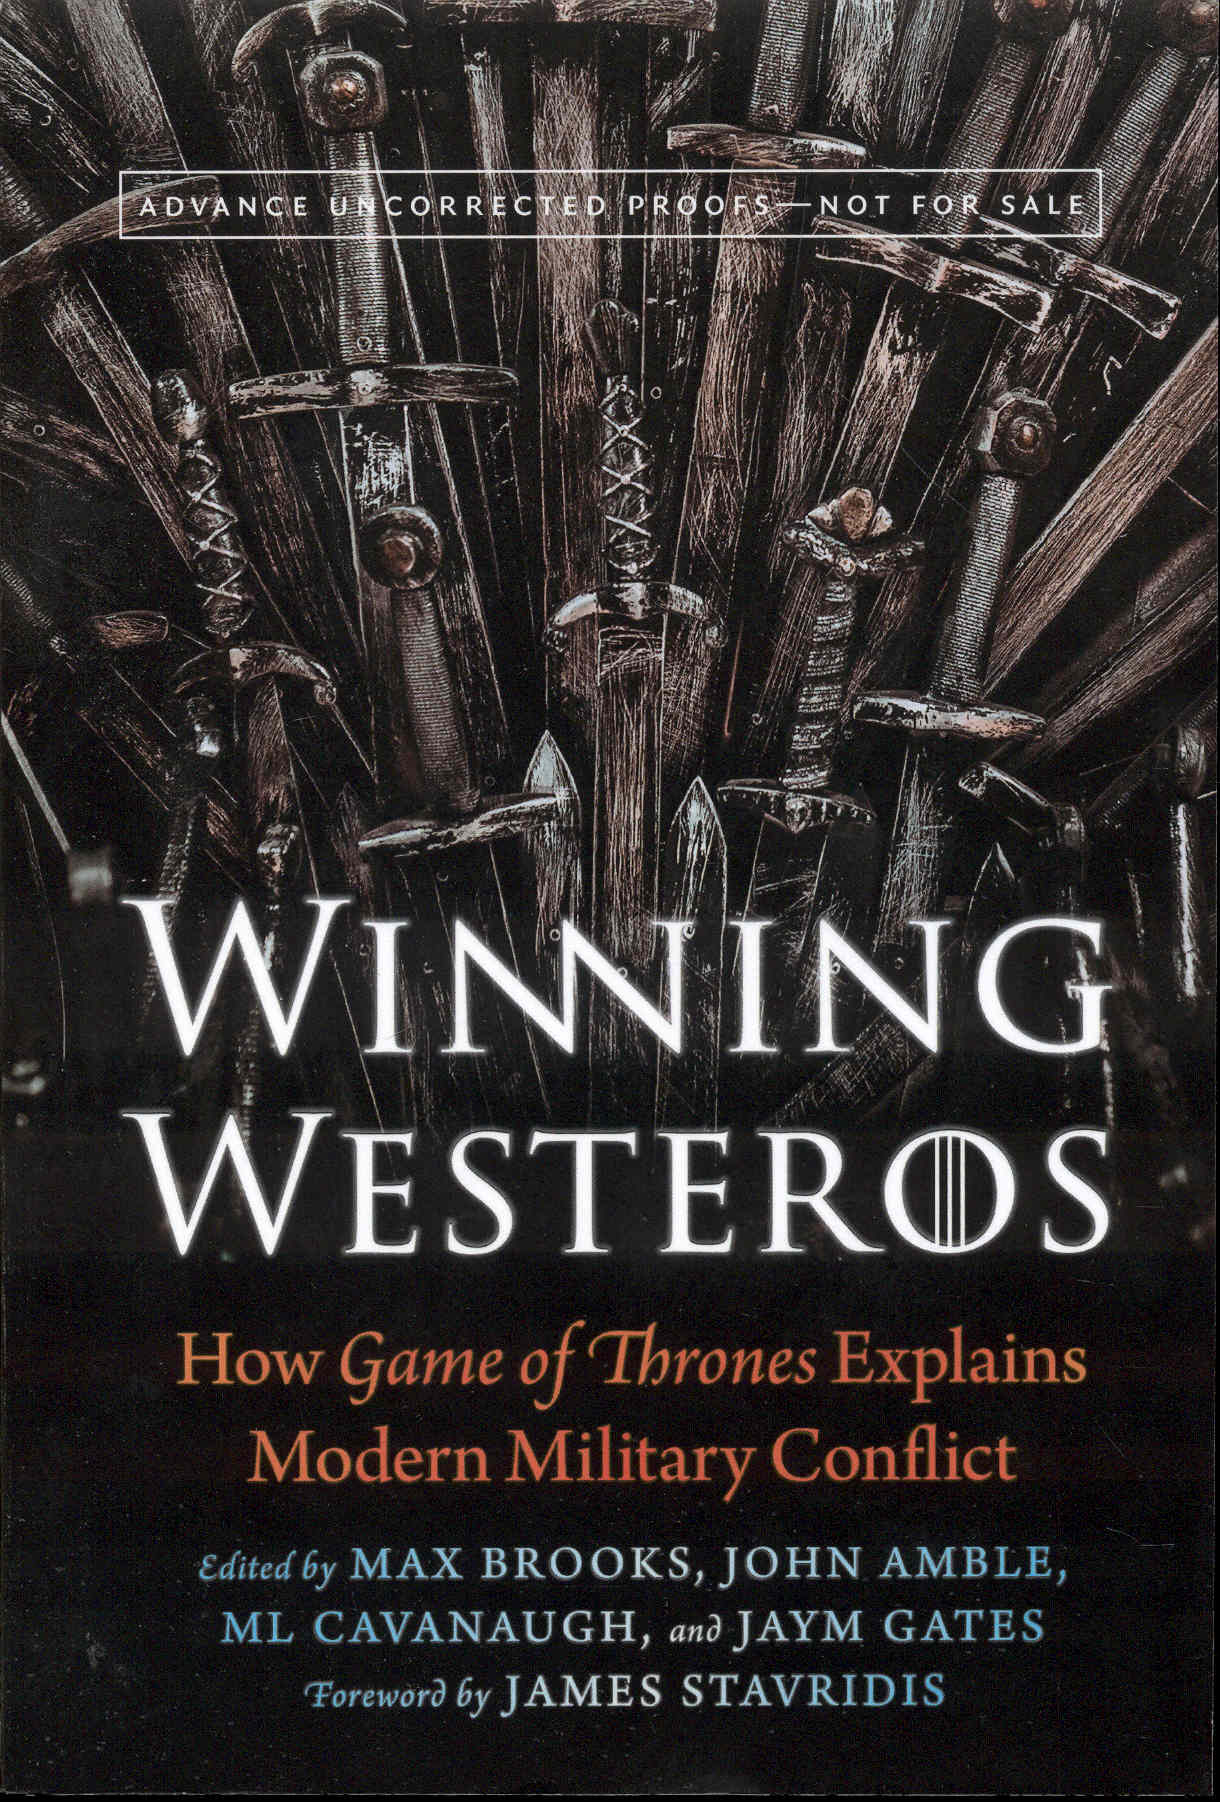 Image for Winning Westeros: How Game of Thrones Explains Modern Military Conflict